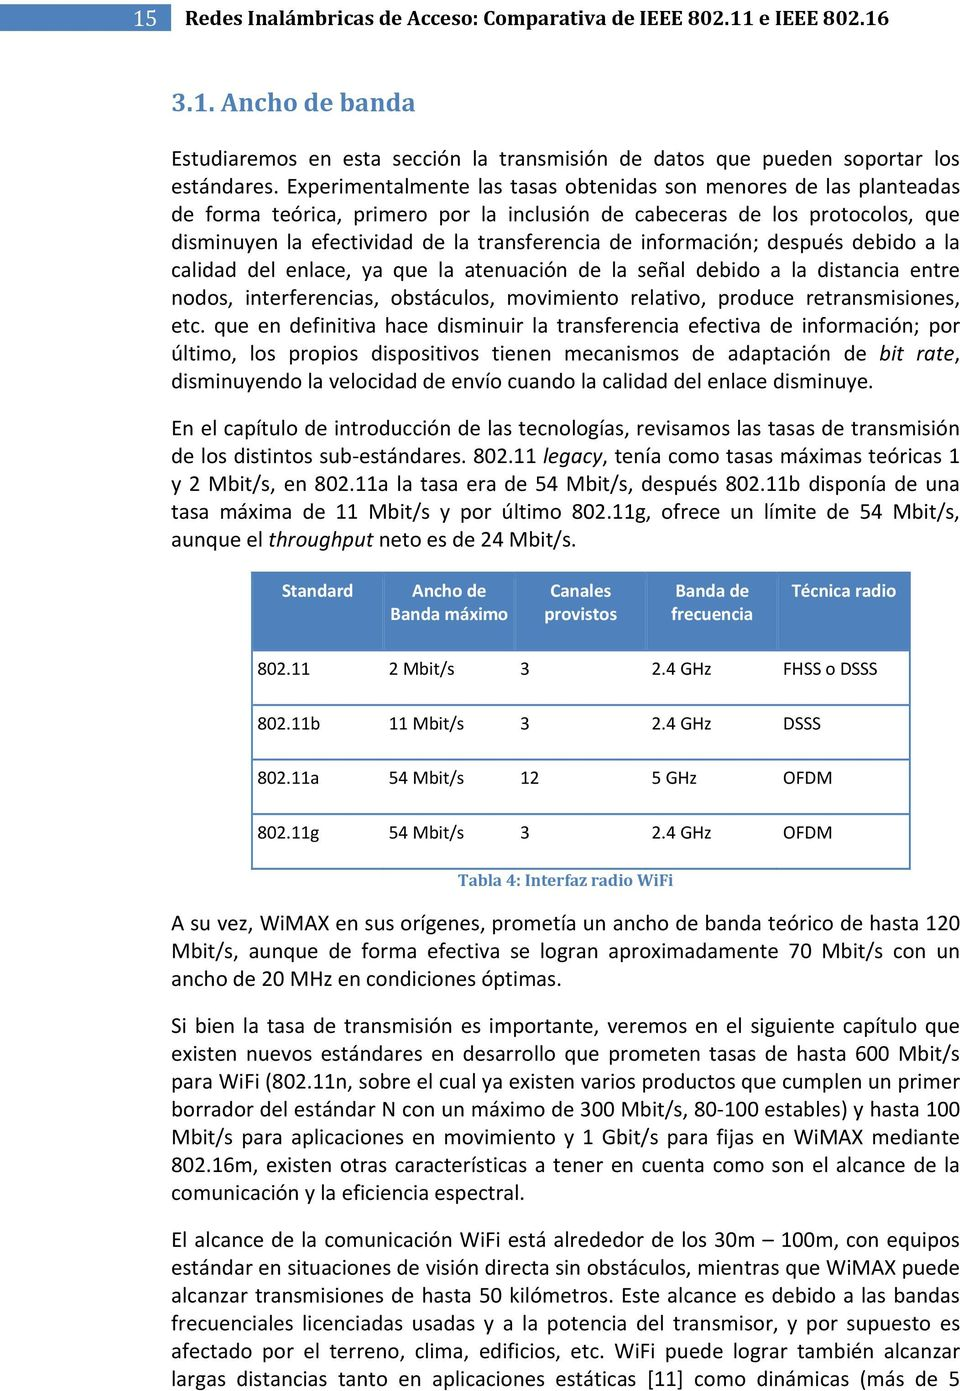 información; después debido a la calidad del enlace, ya que la atenuación de la señal debido a la distancia entre nodos, interferencias, obstáculos, movimiento relativo, produce retransmisiones, etc.